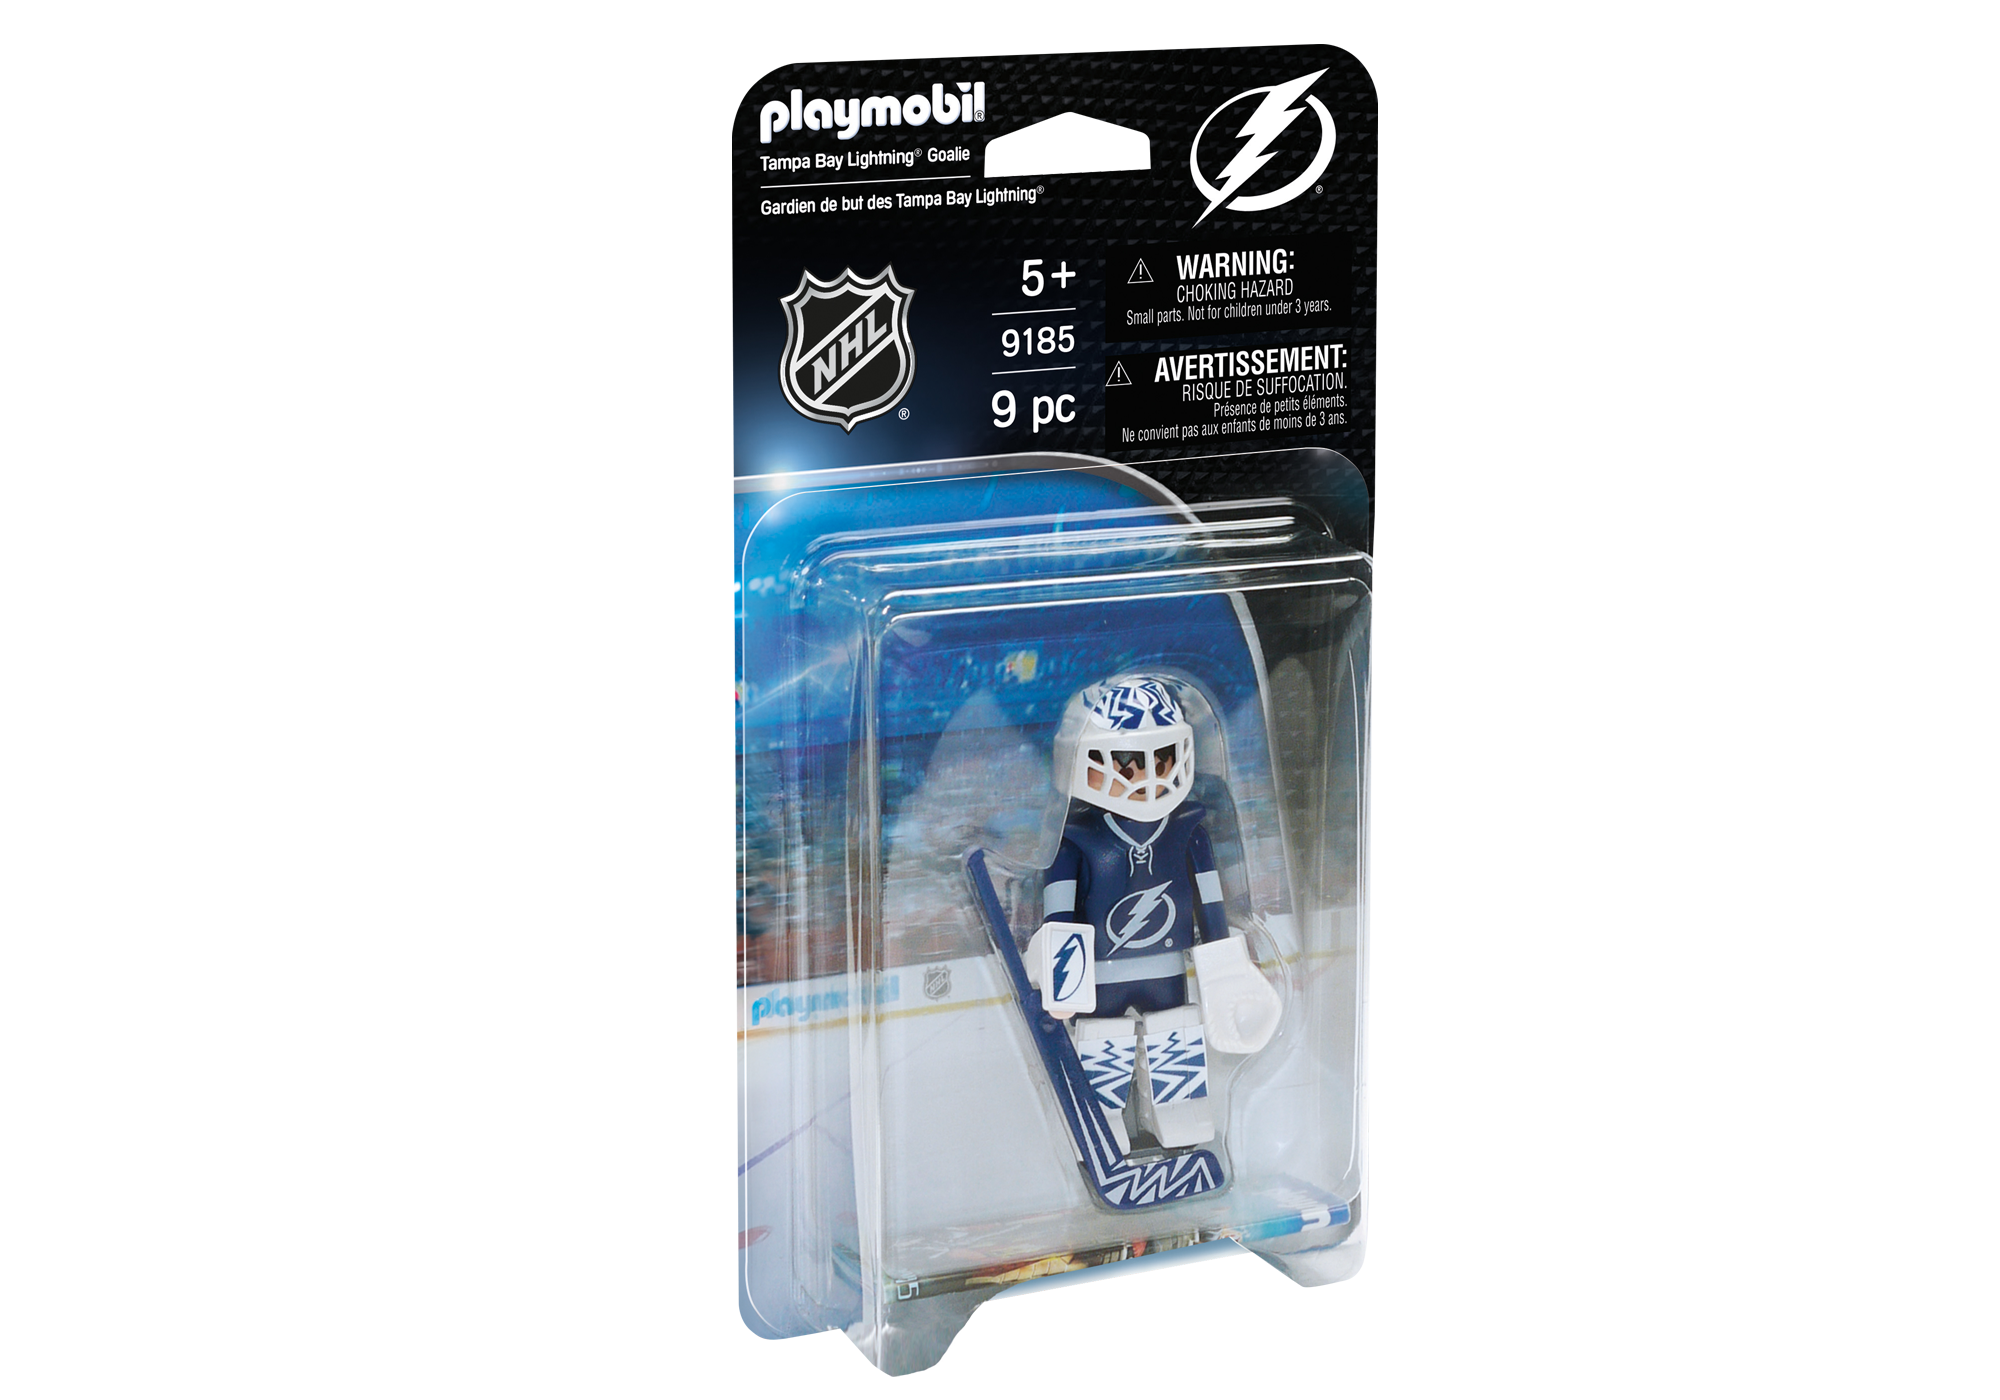 photo about Tampa Bay Lightning Printable Schedule called NHL® Tampa Bay Lightning® Goalie - 9185 - PLAYMOBIL® United states